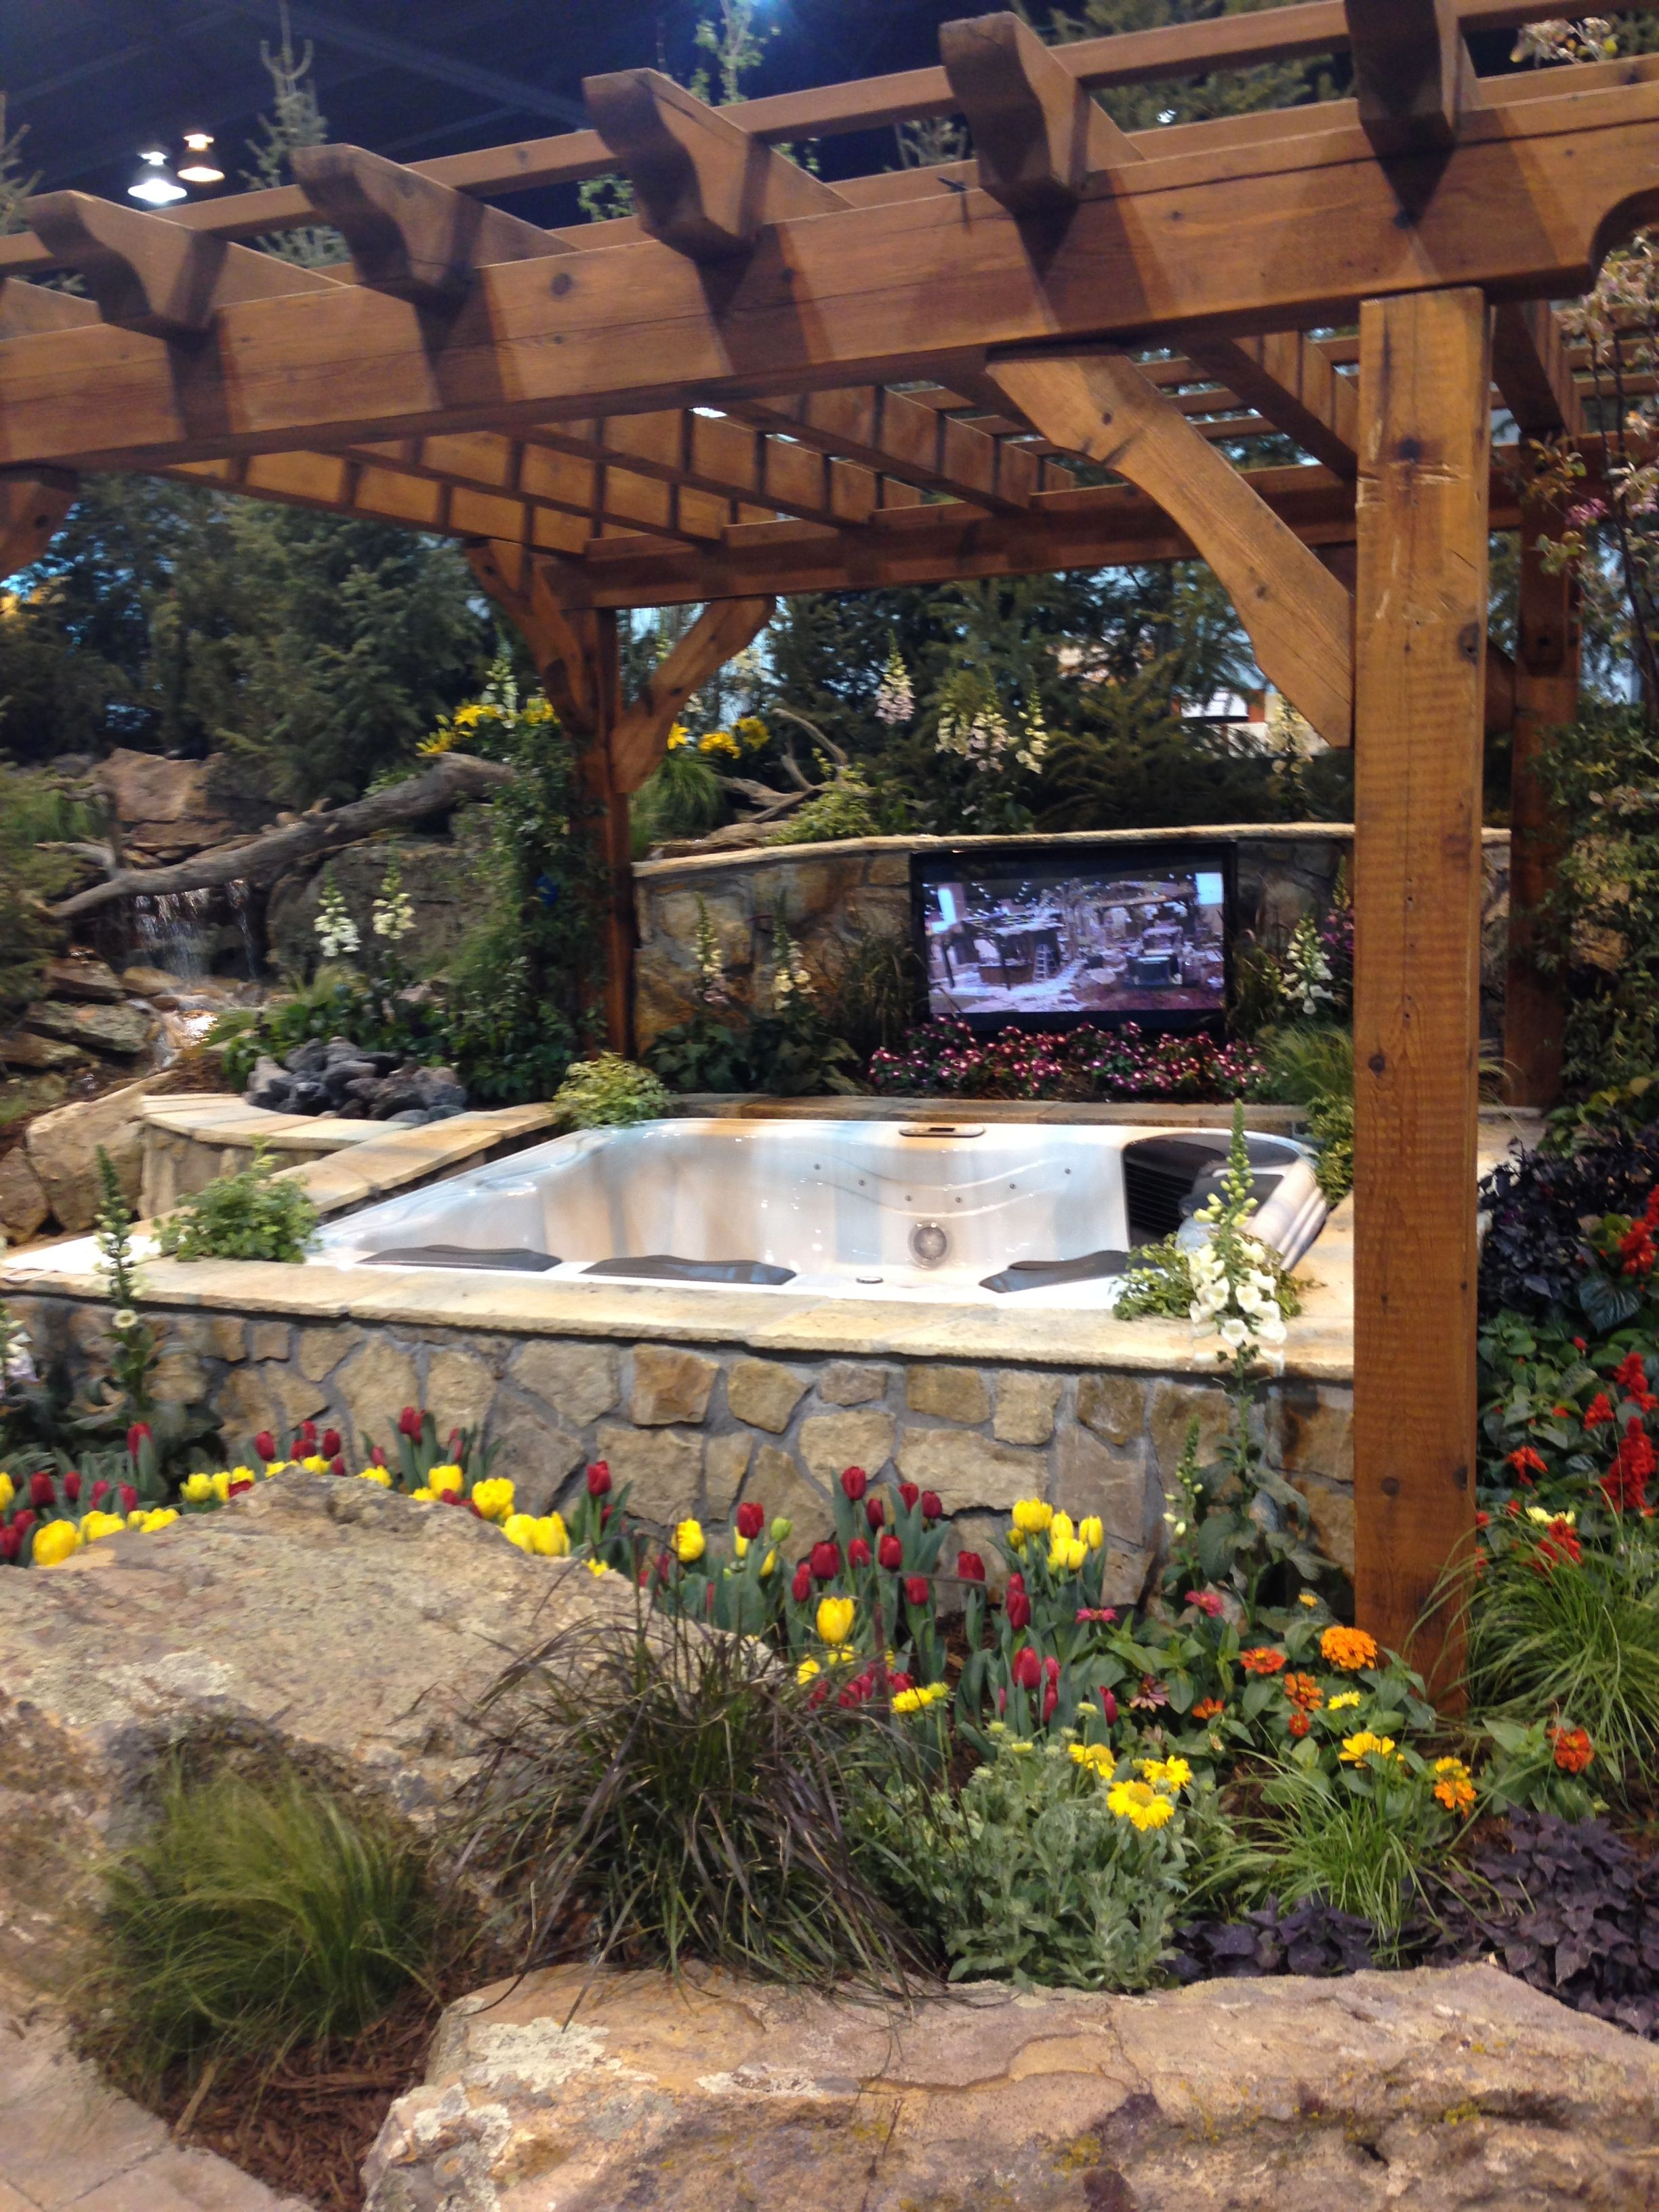 Beautiful RMPW Exhibit At The Colorado Home And Garden Show In Denver, CO. Plan Your  Dream Backyard, Complete With A Hot Tub And Pergula.